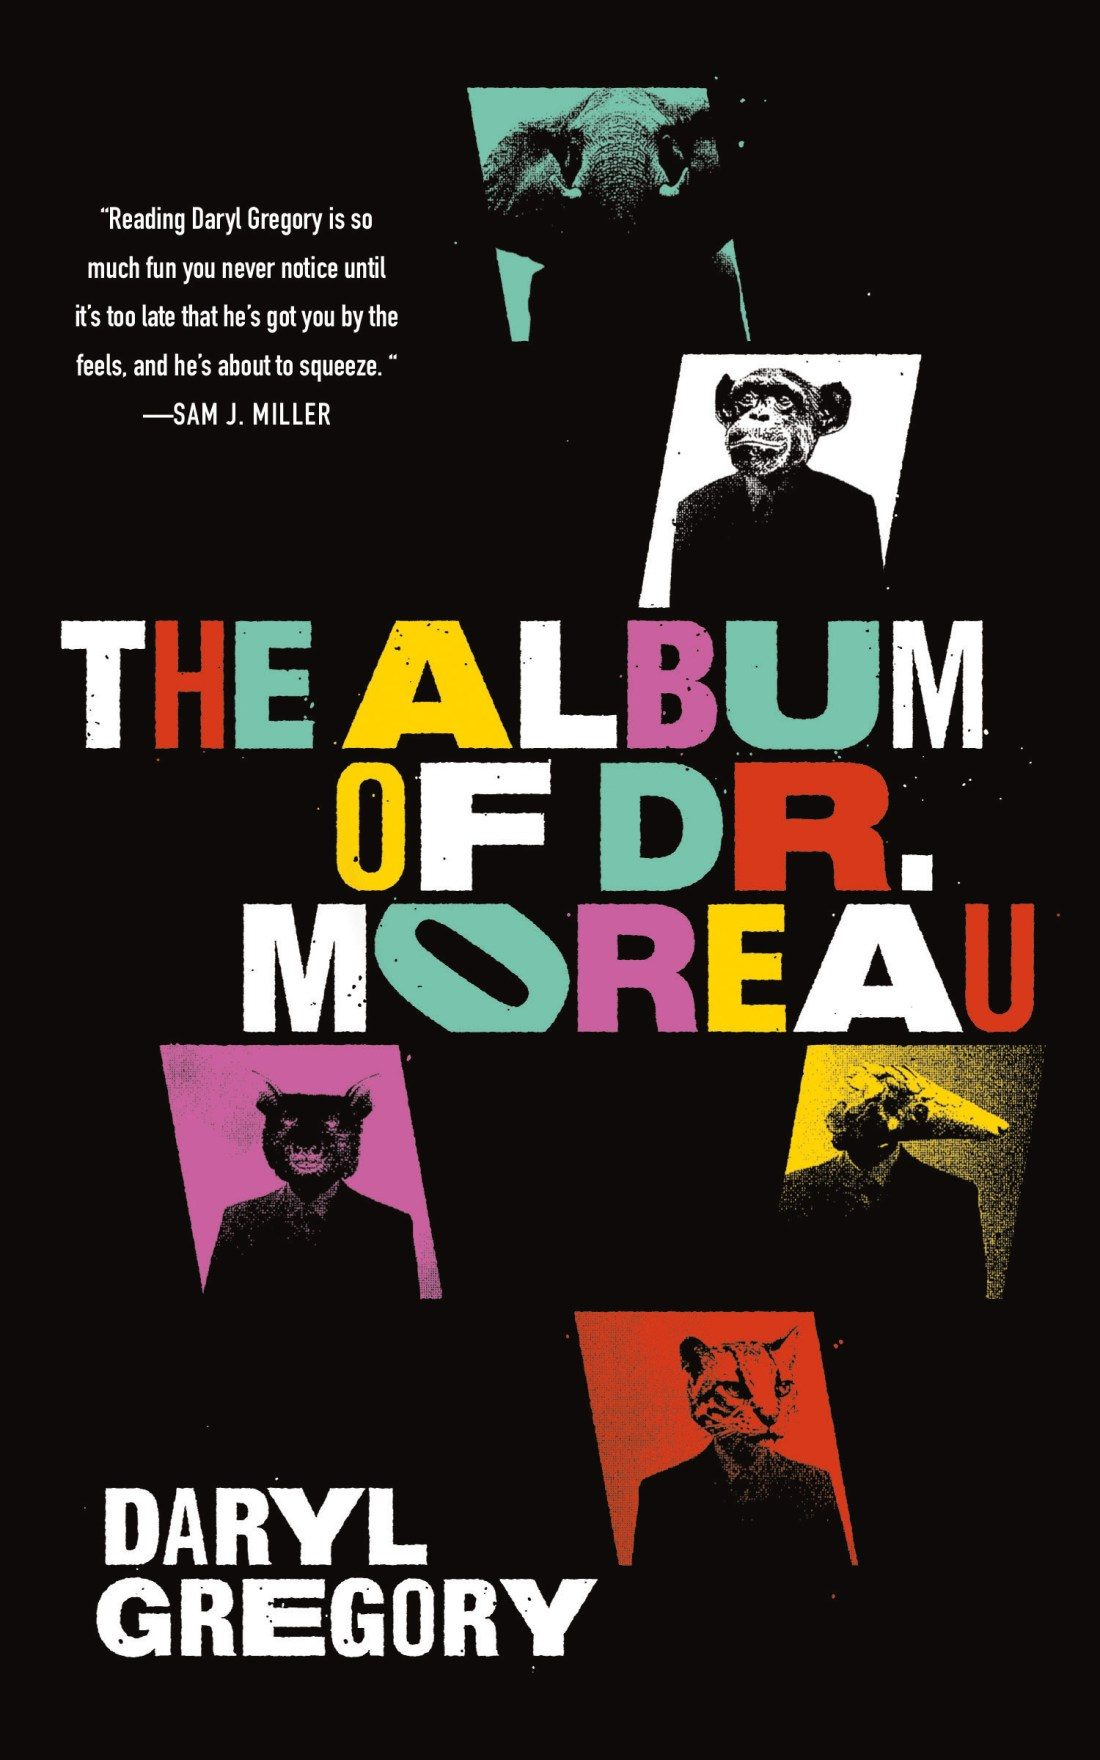 The Album Of Dr. Moreau Release Date? Daryl Gregory 2021 New Releases